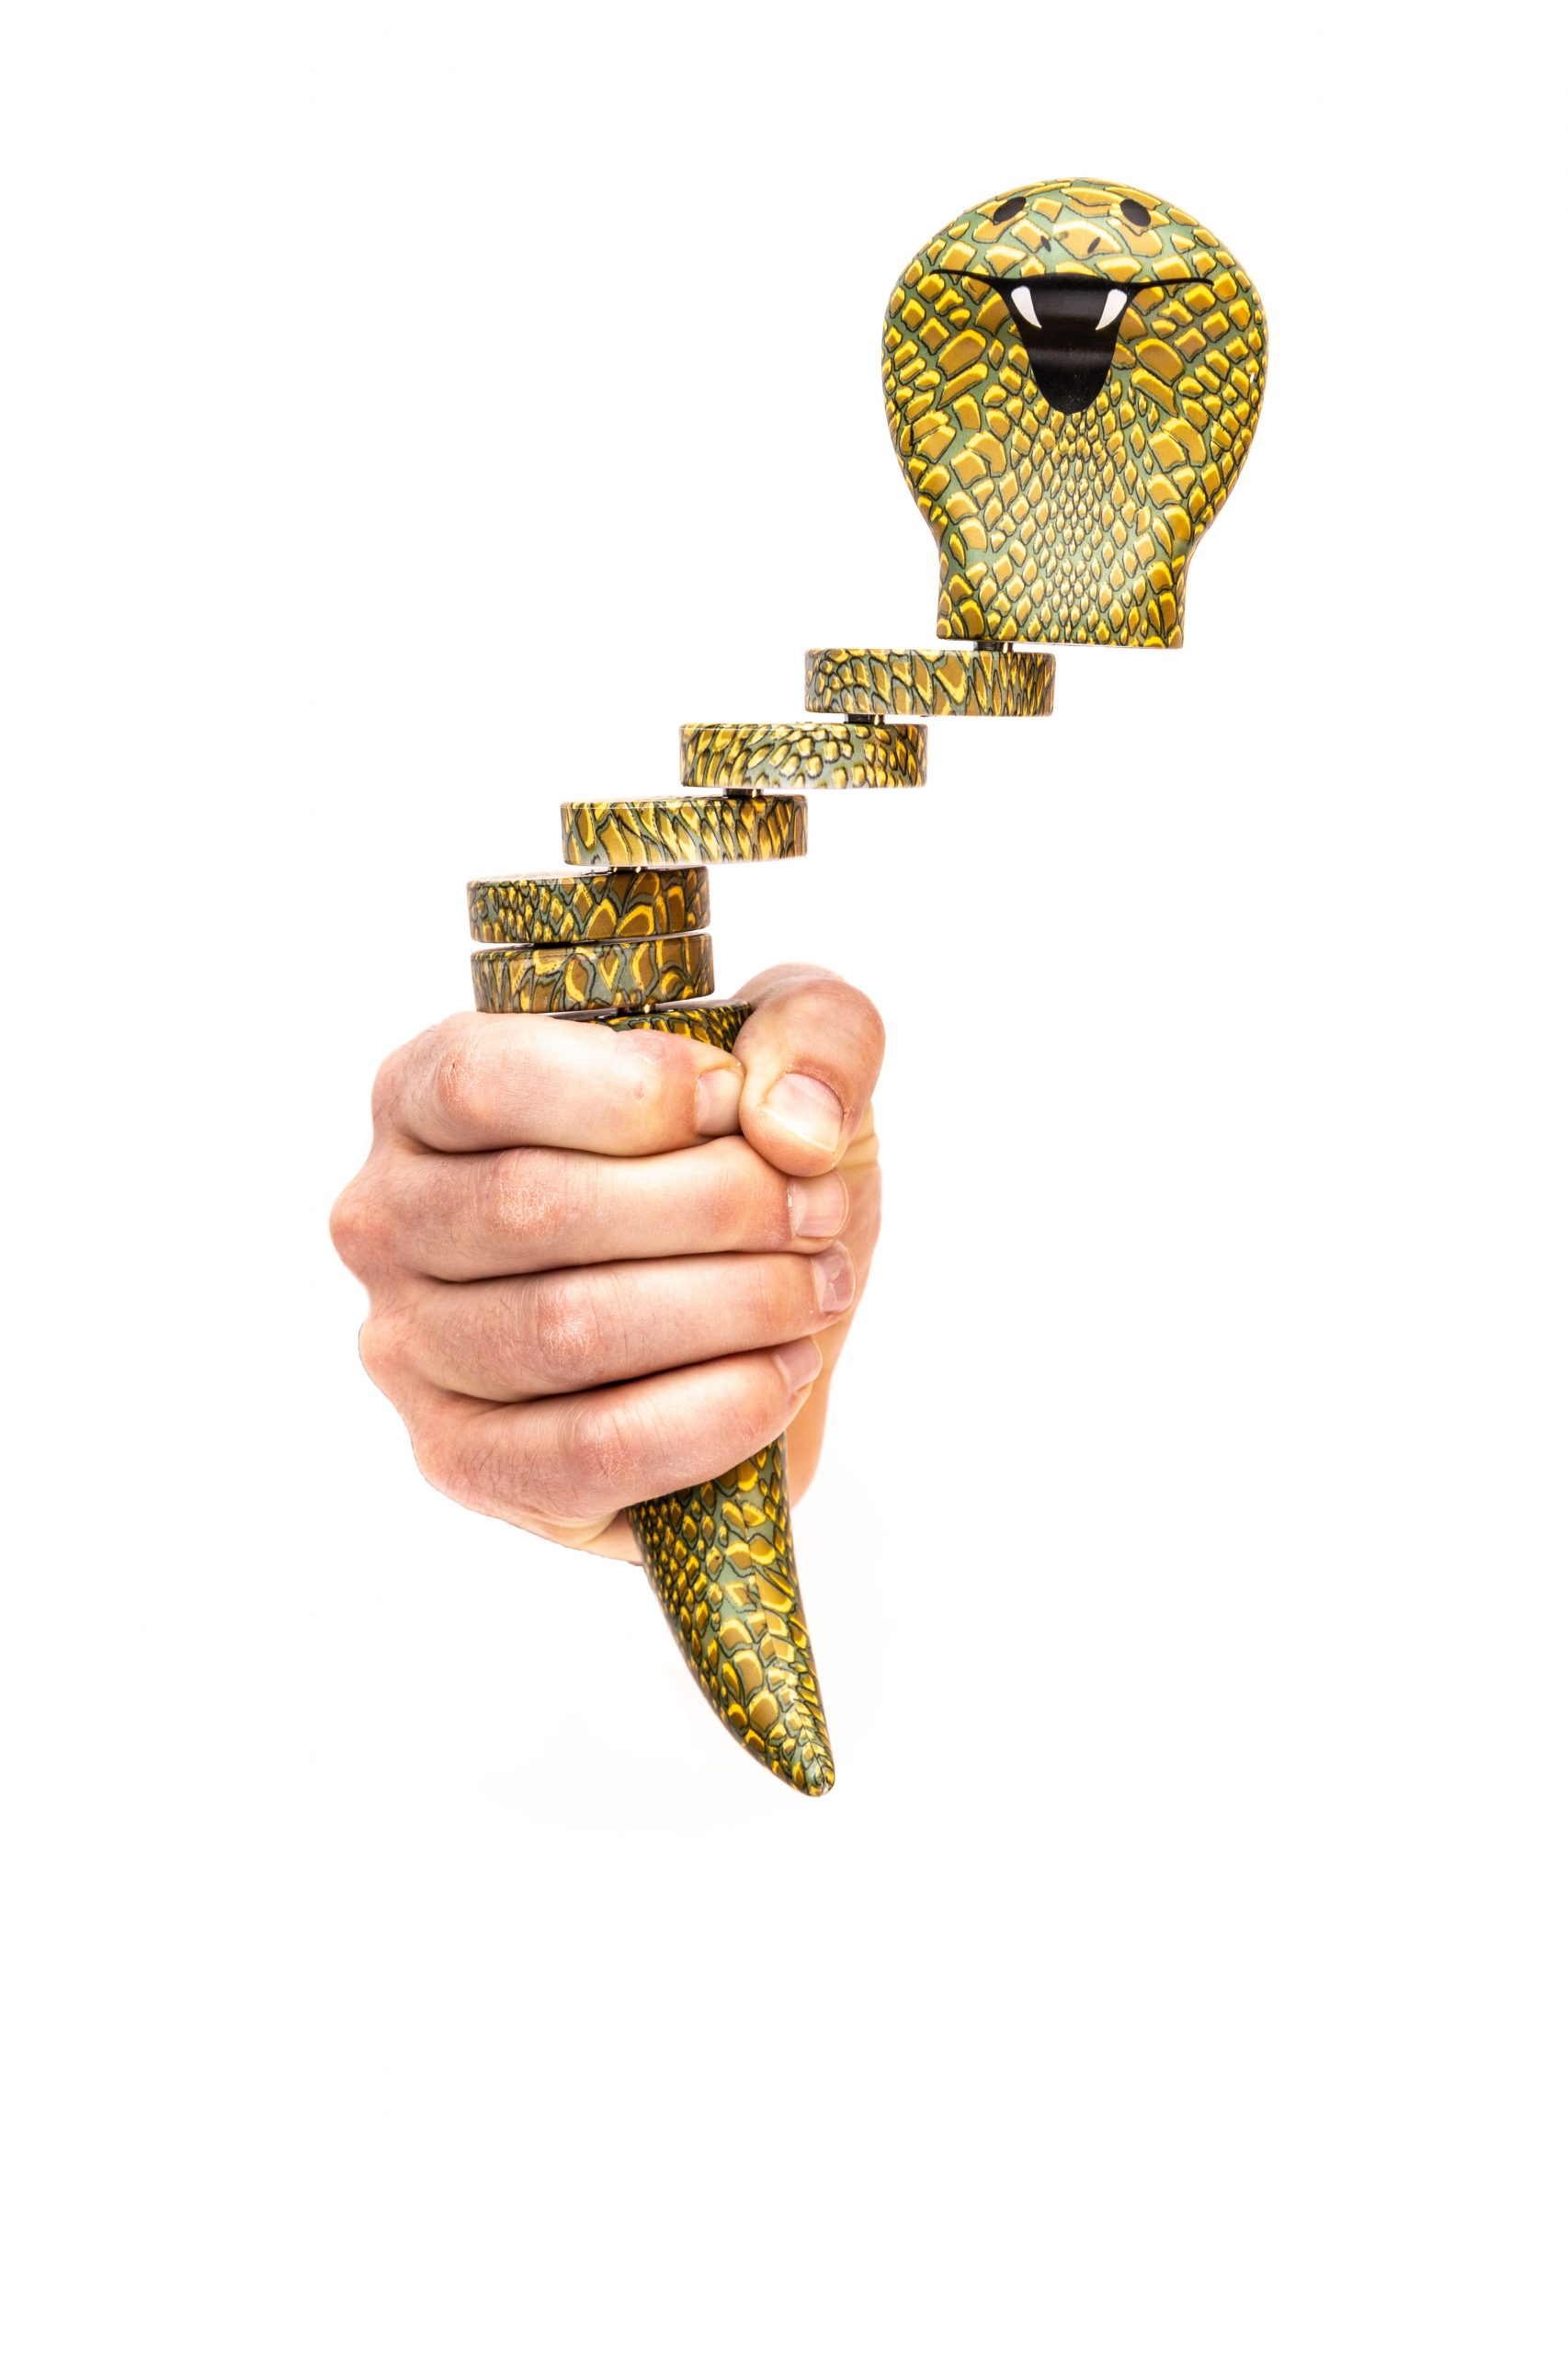 Hand with Snake Charmer toy by Trident Invents